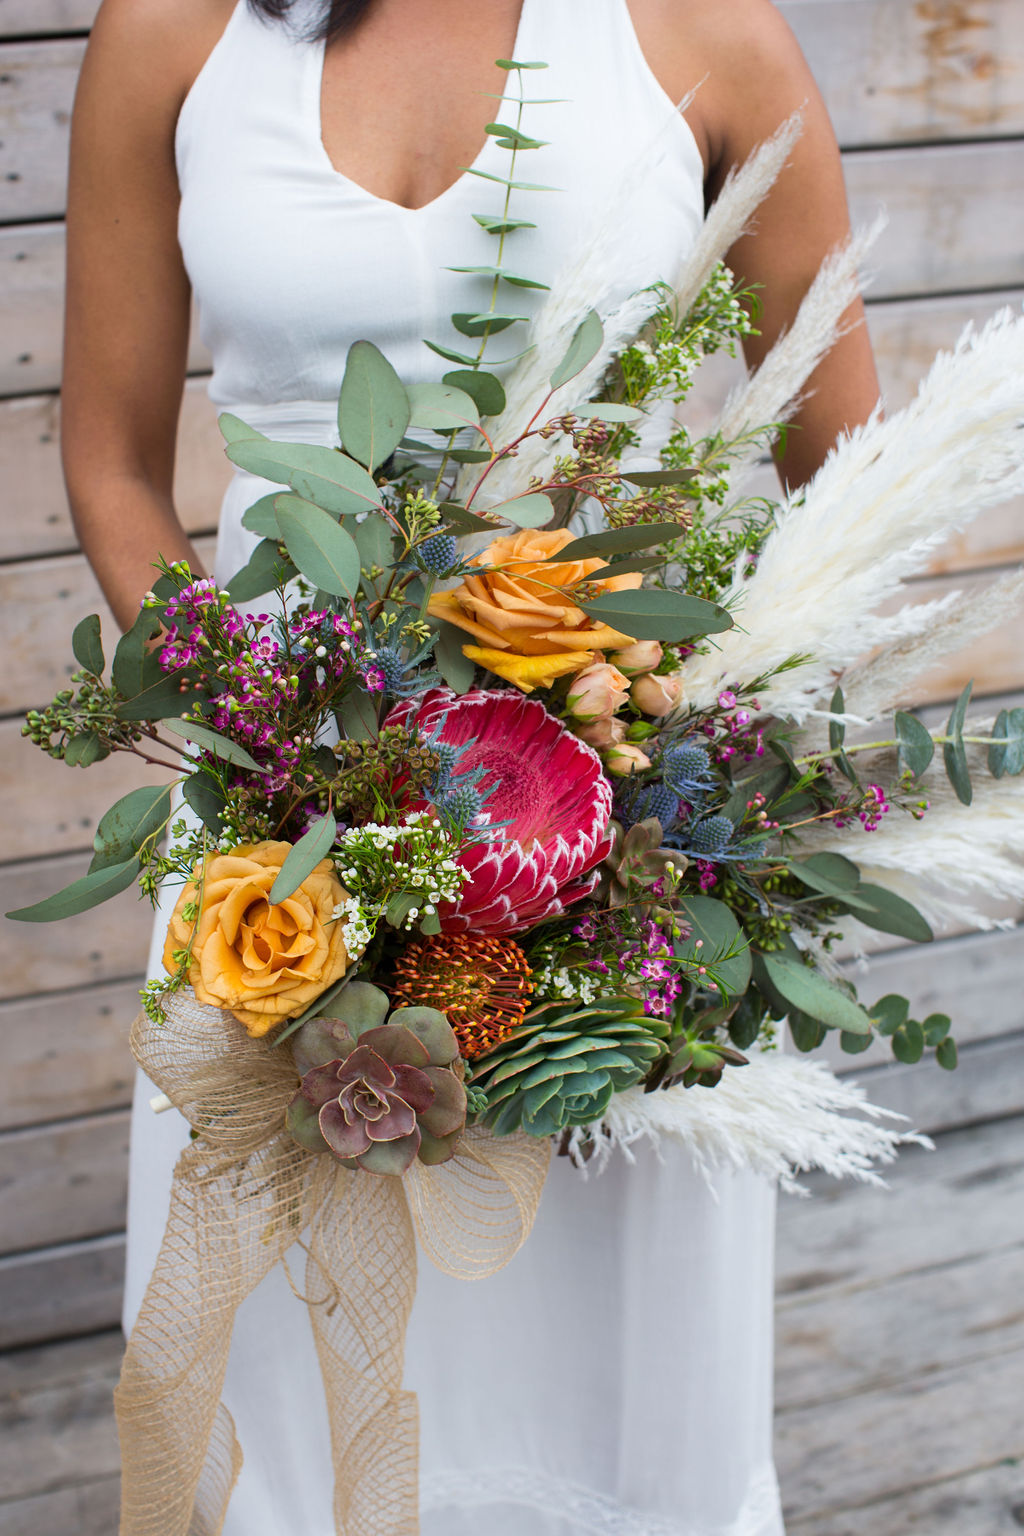 extra large boho style succulent bouquet featuring proteas, feathers, and pampas grass by Succulents for Hire